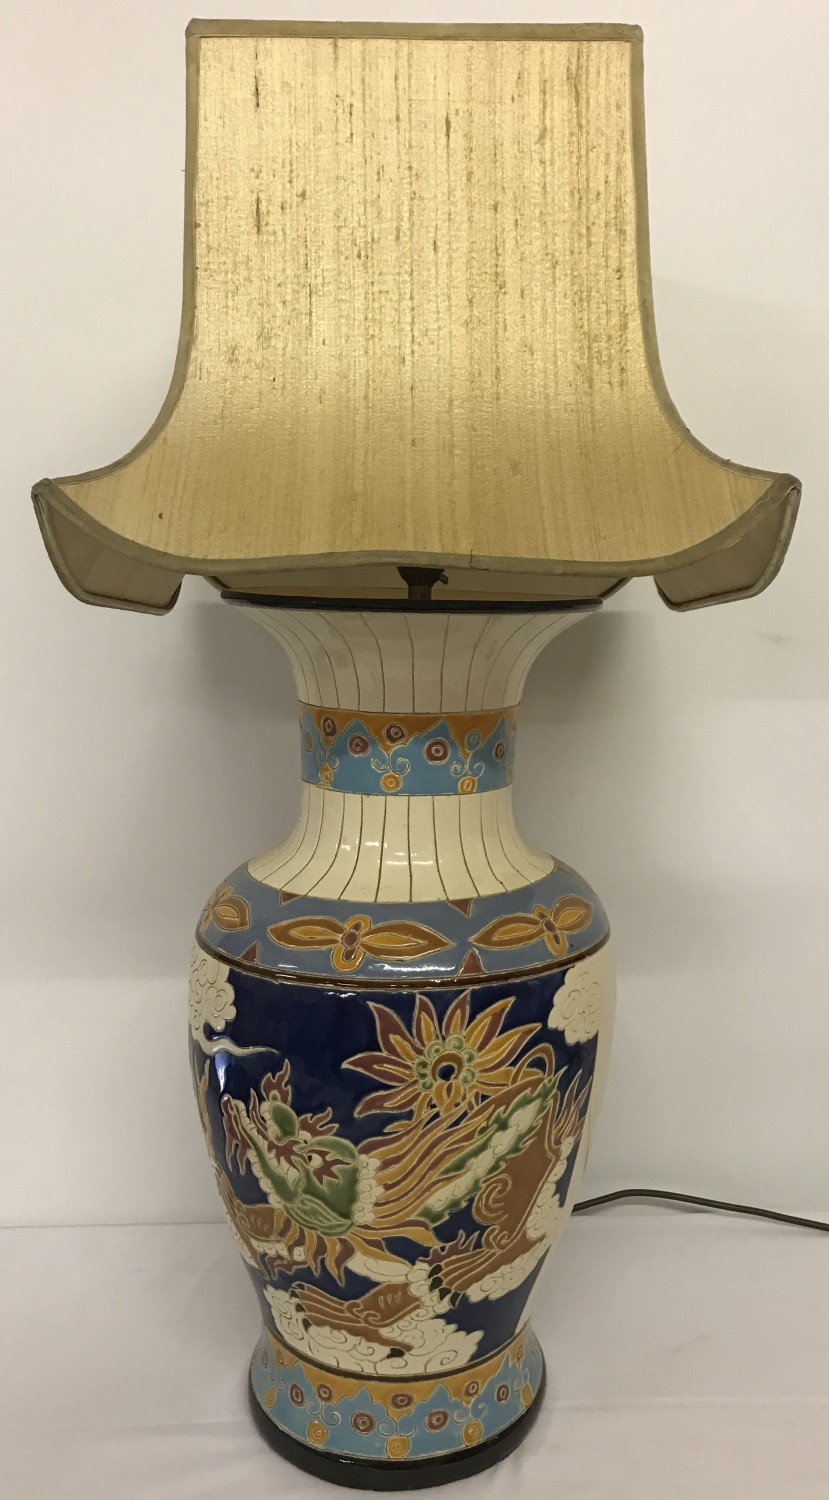 Lot 83 - A large Chinese ceramic urn shaped table lamp with colourful dragon panel design.